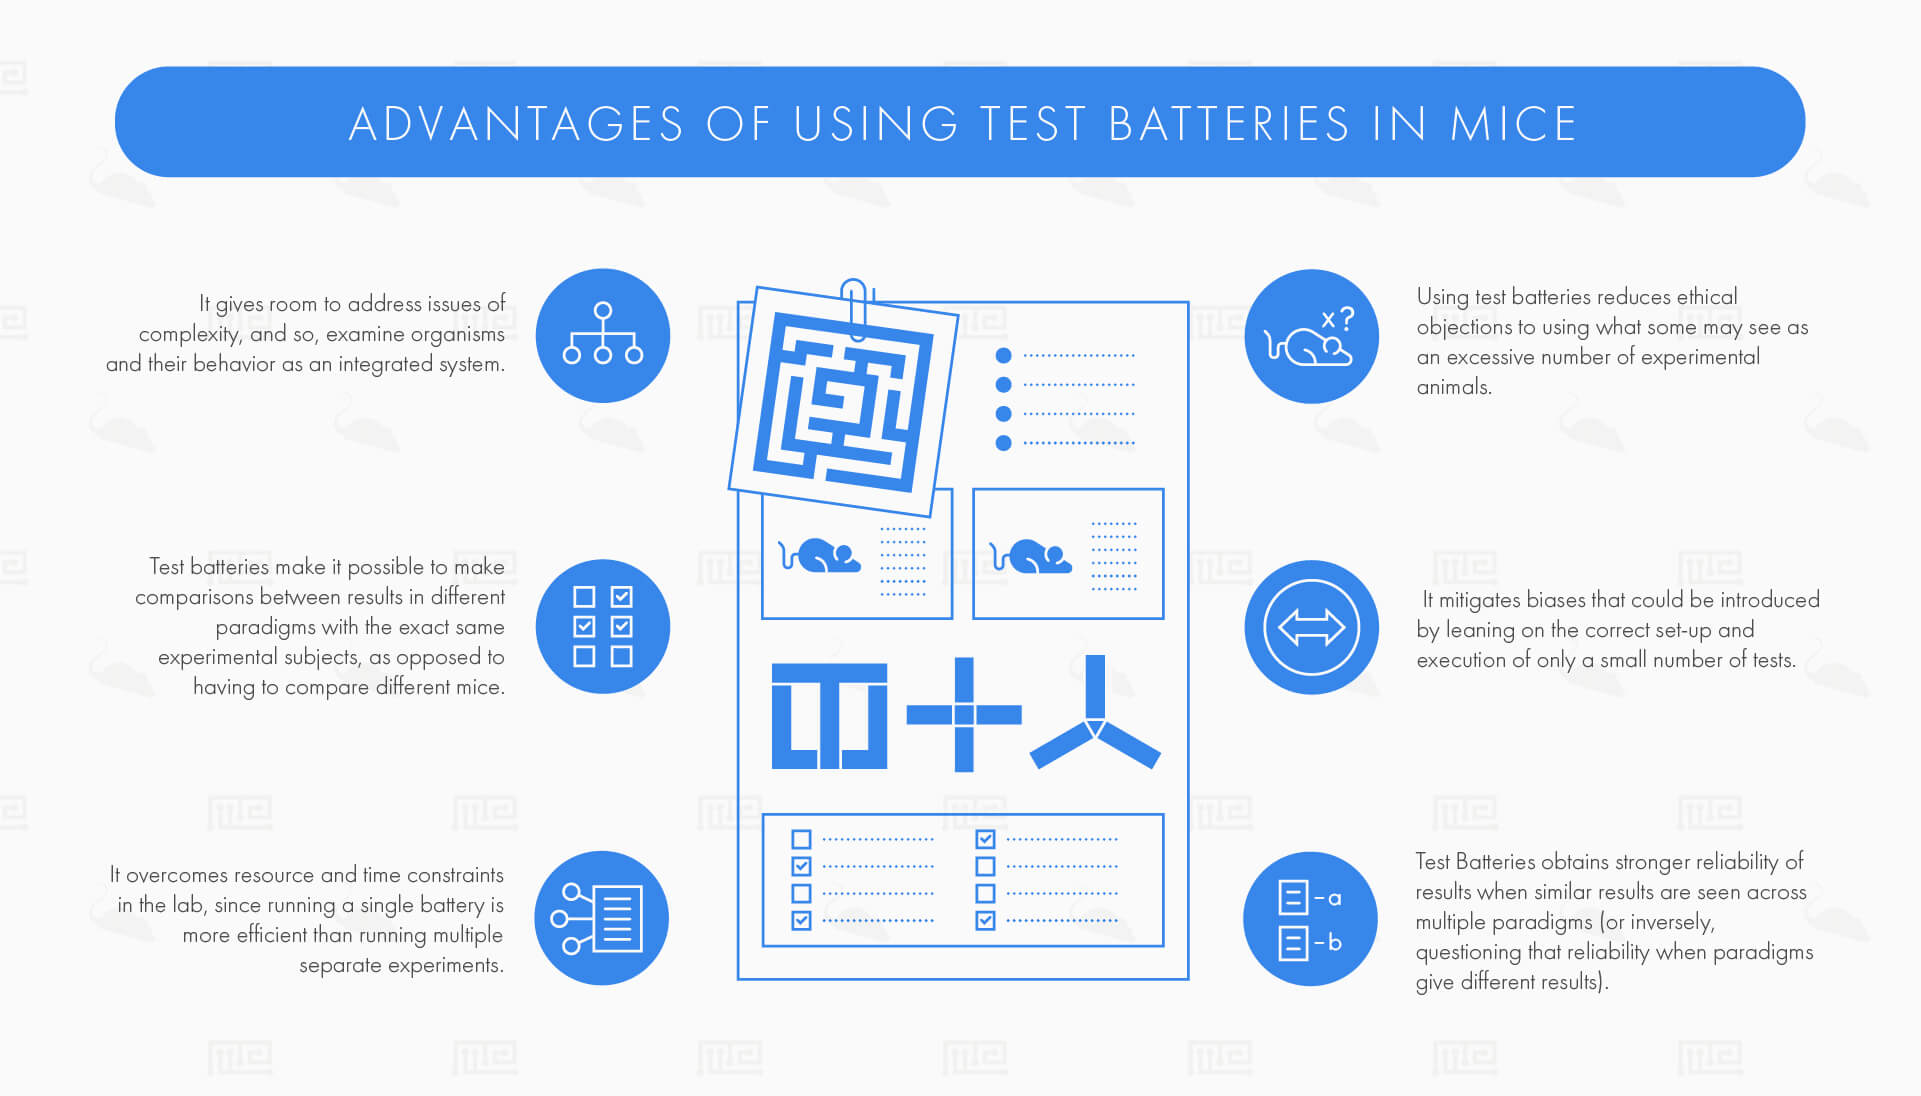 advantages of test batteries in mice